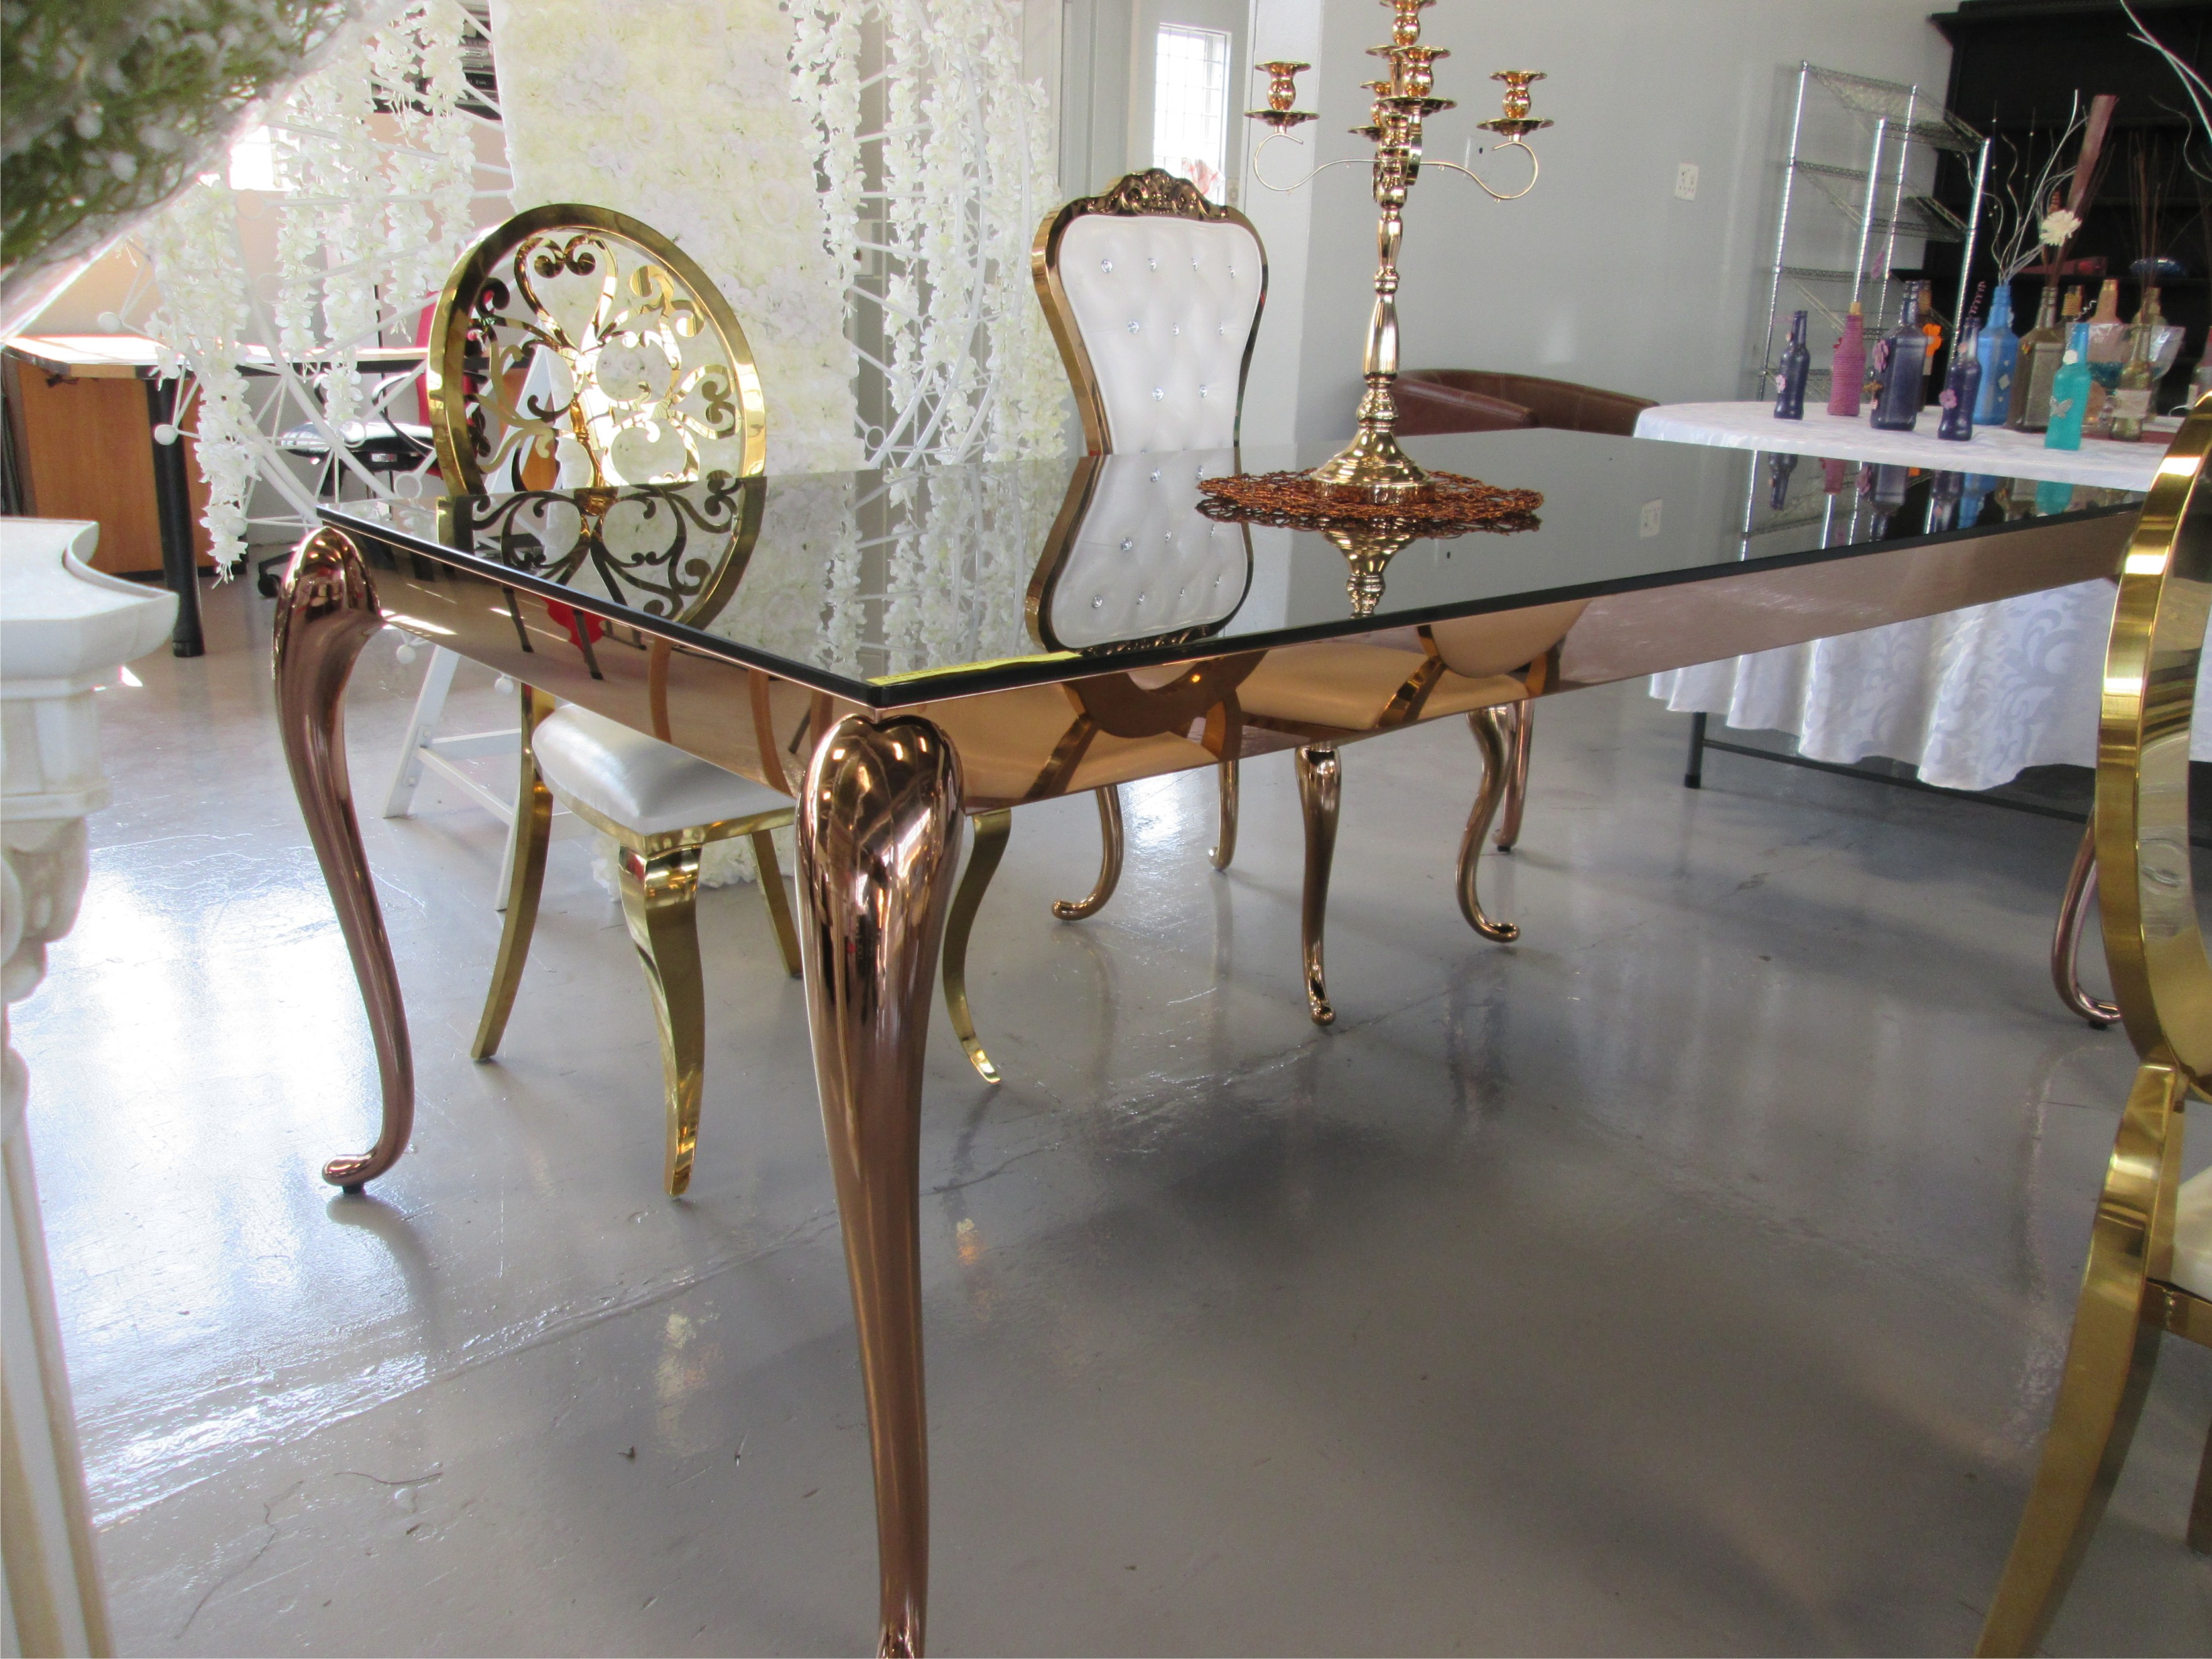 2M X 1M STAINLESS STEEL ROSE GOLD TABLE WITH BLACK REFLECTIVE GLASS TOP